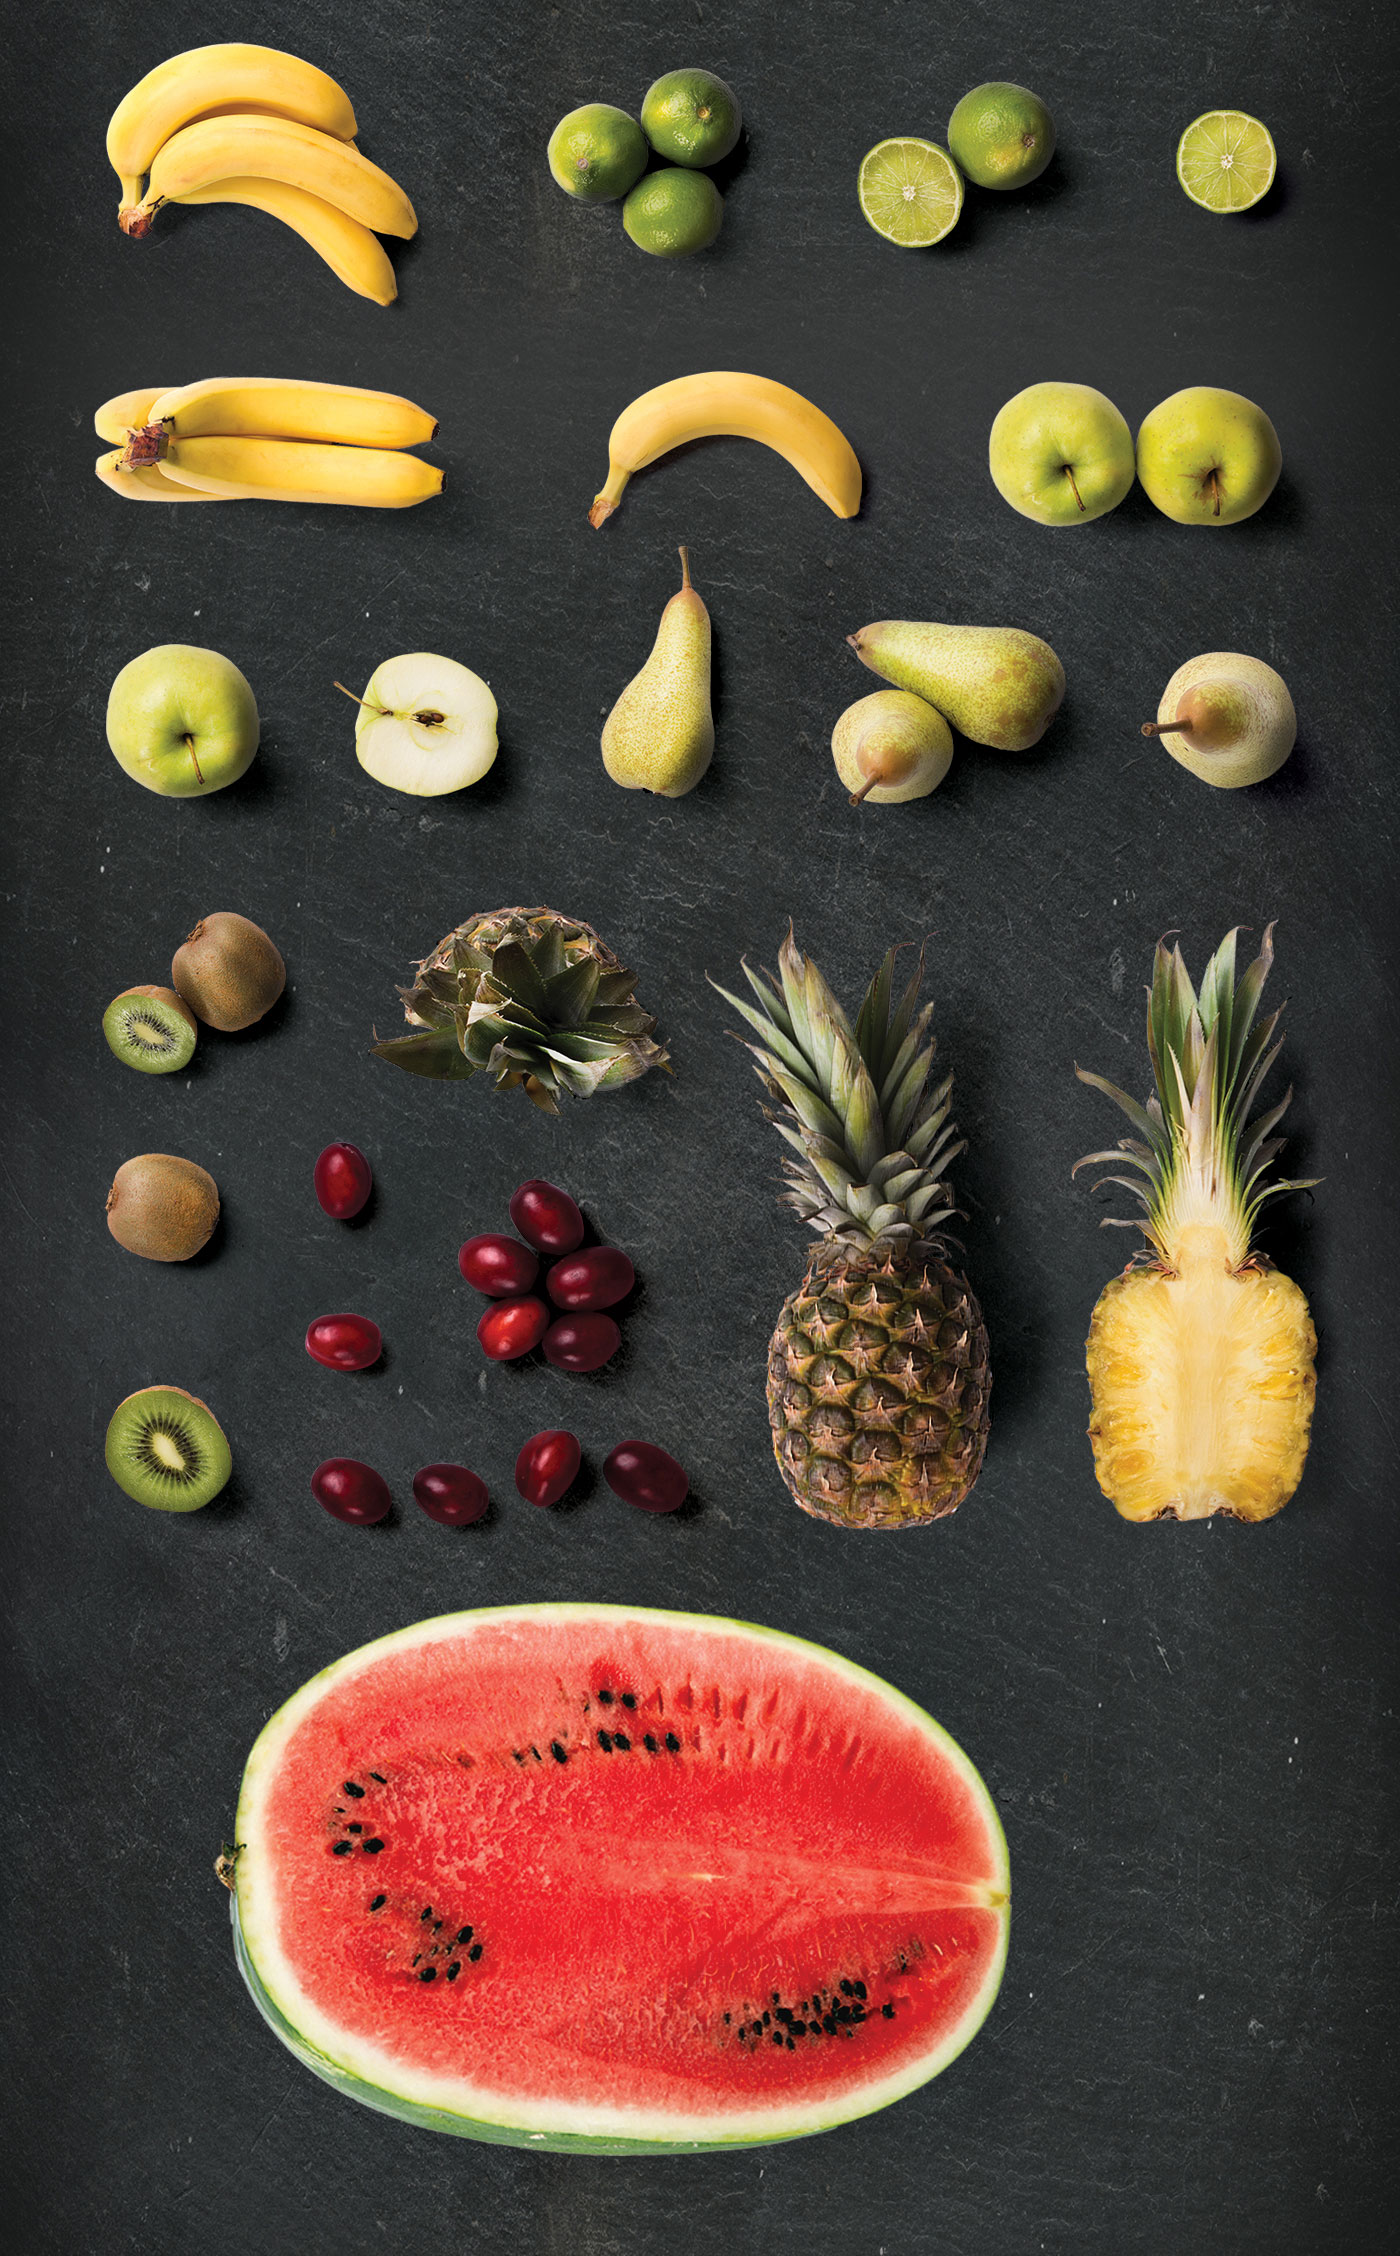 Pineapple and watermelon